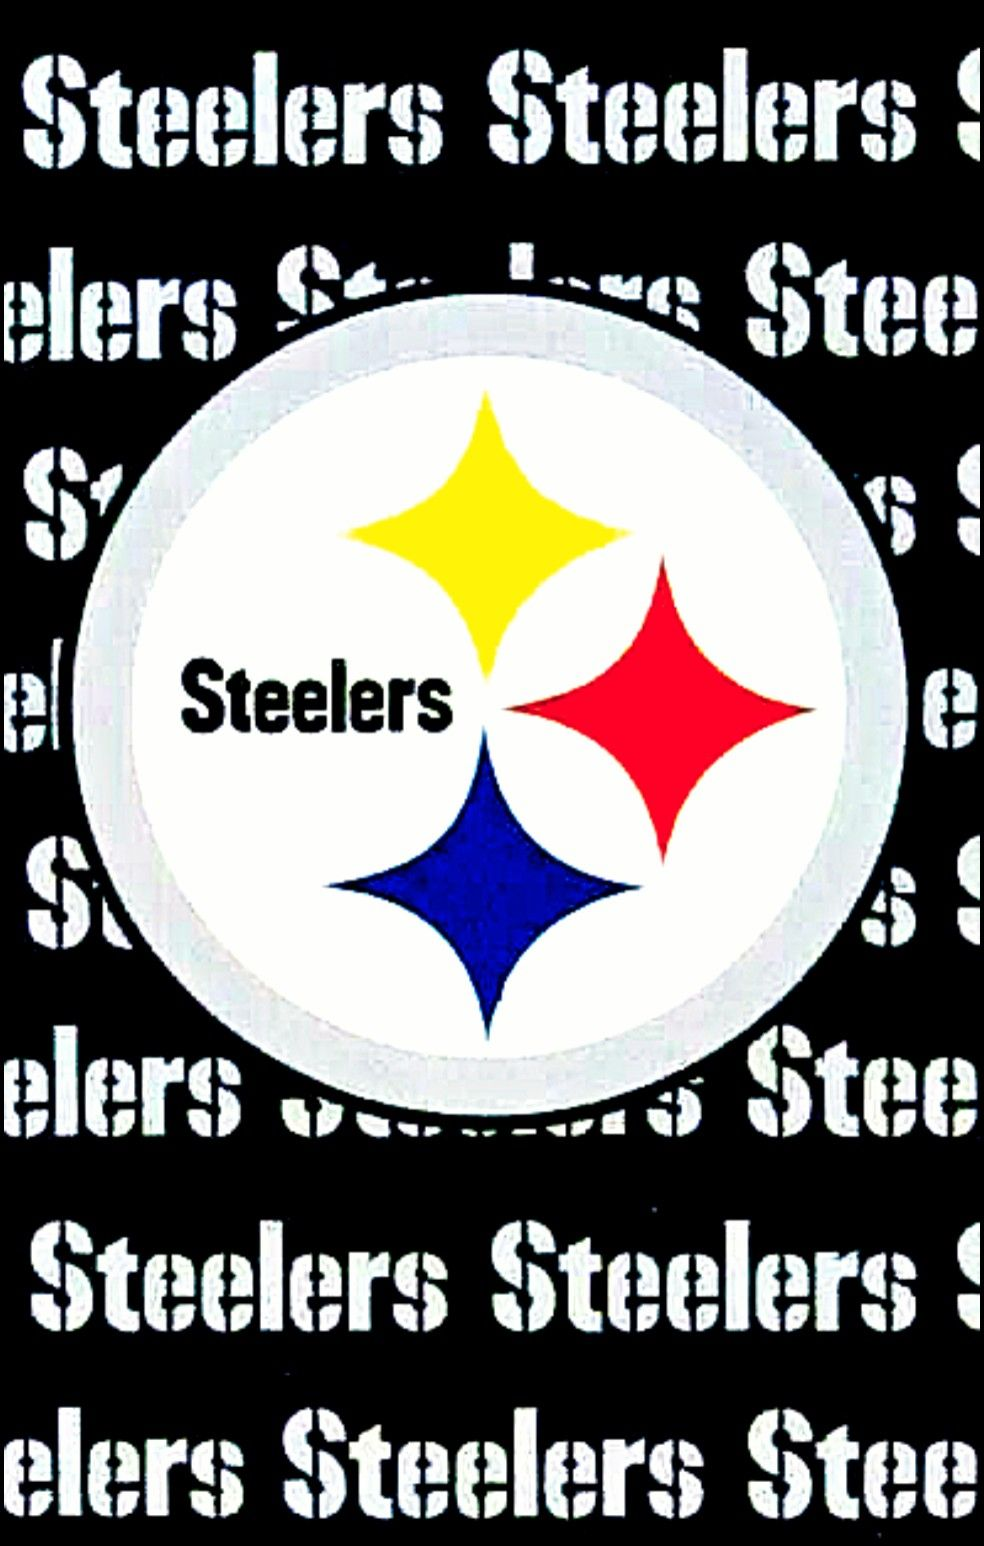 Pin by NatyNate on IphoneBackgrounds Steelers, Steeler